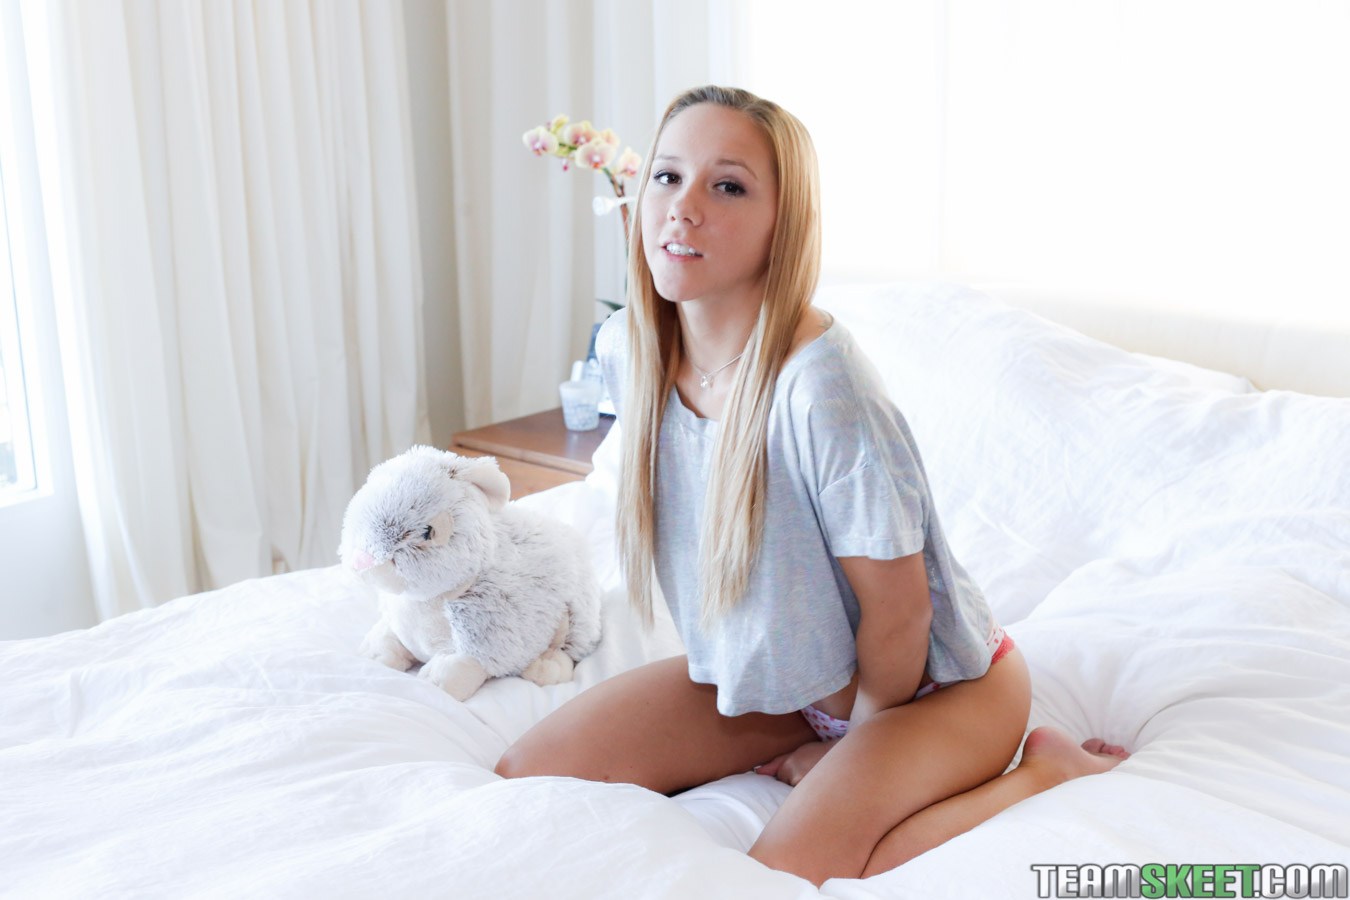 Sexy and cute amateur blonde teen doggystyle sex